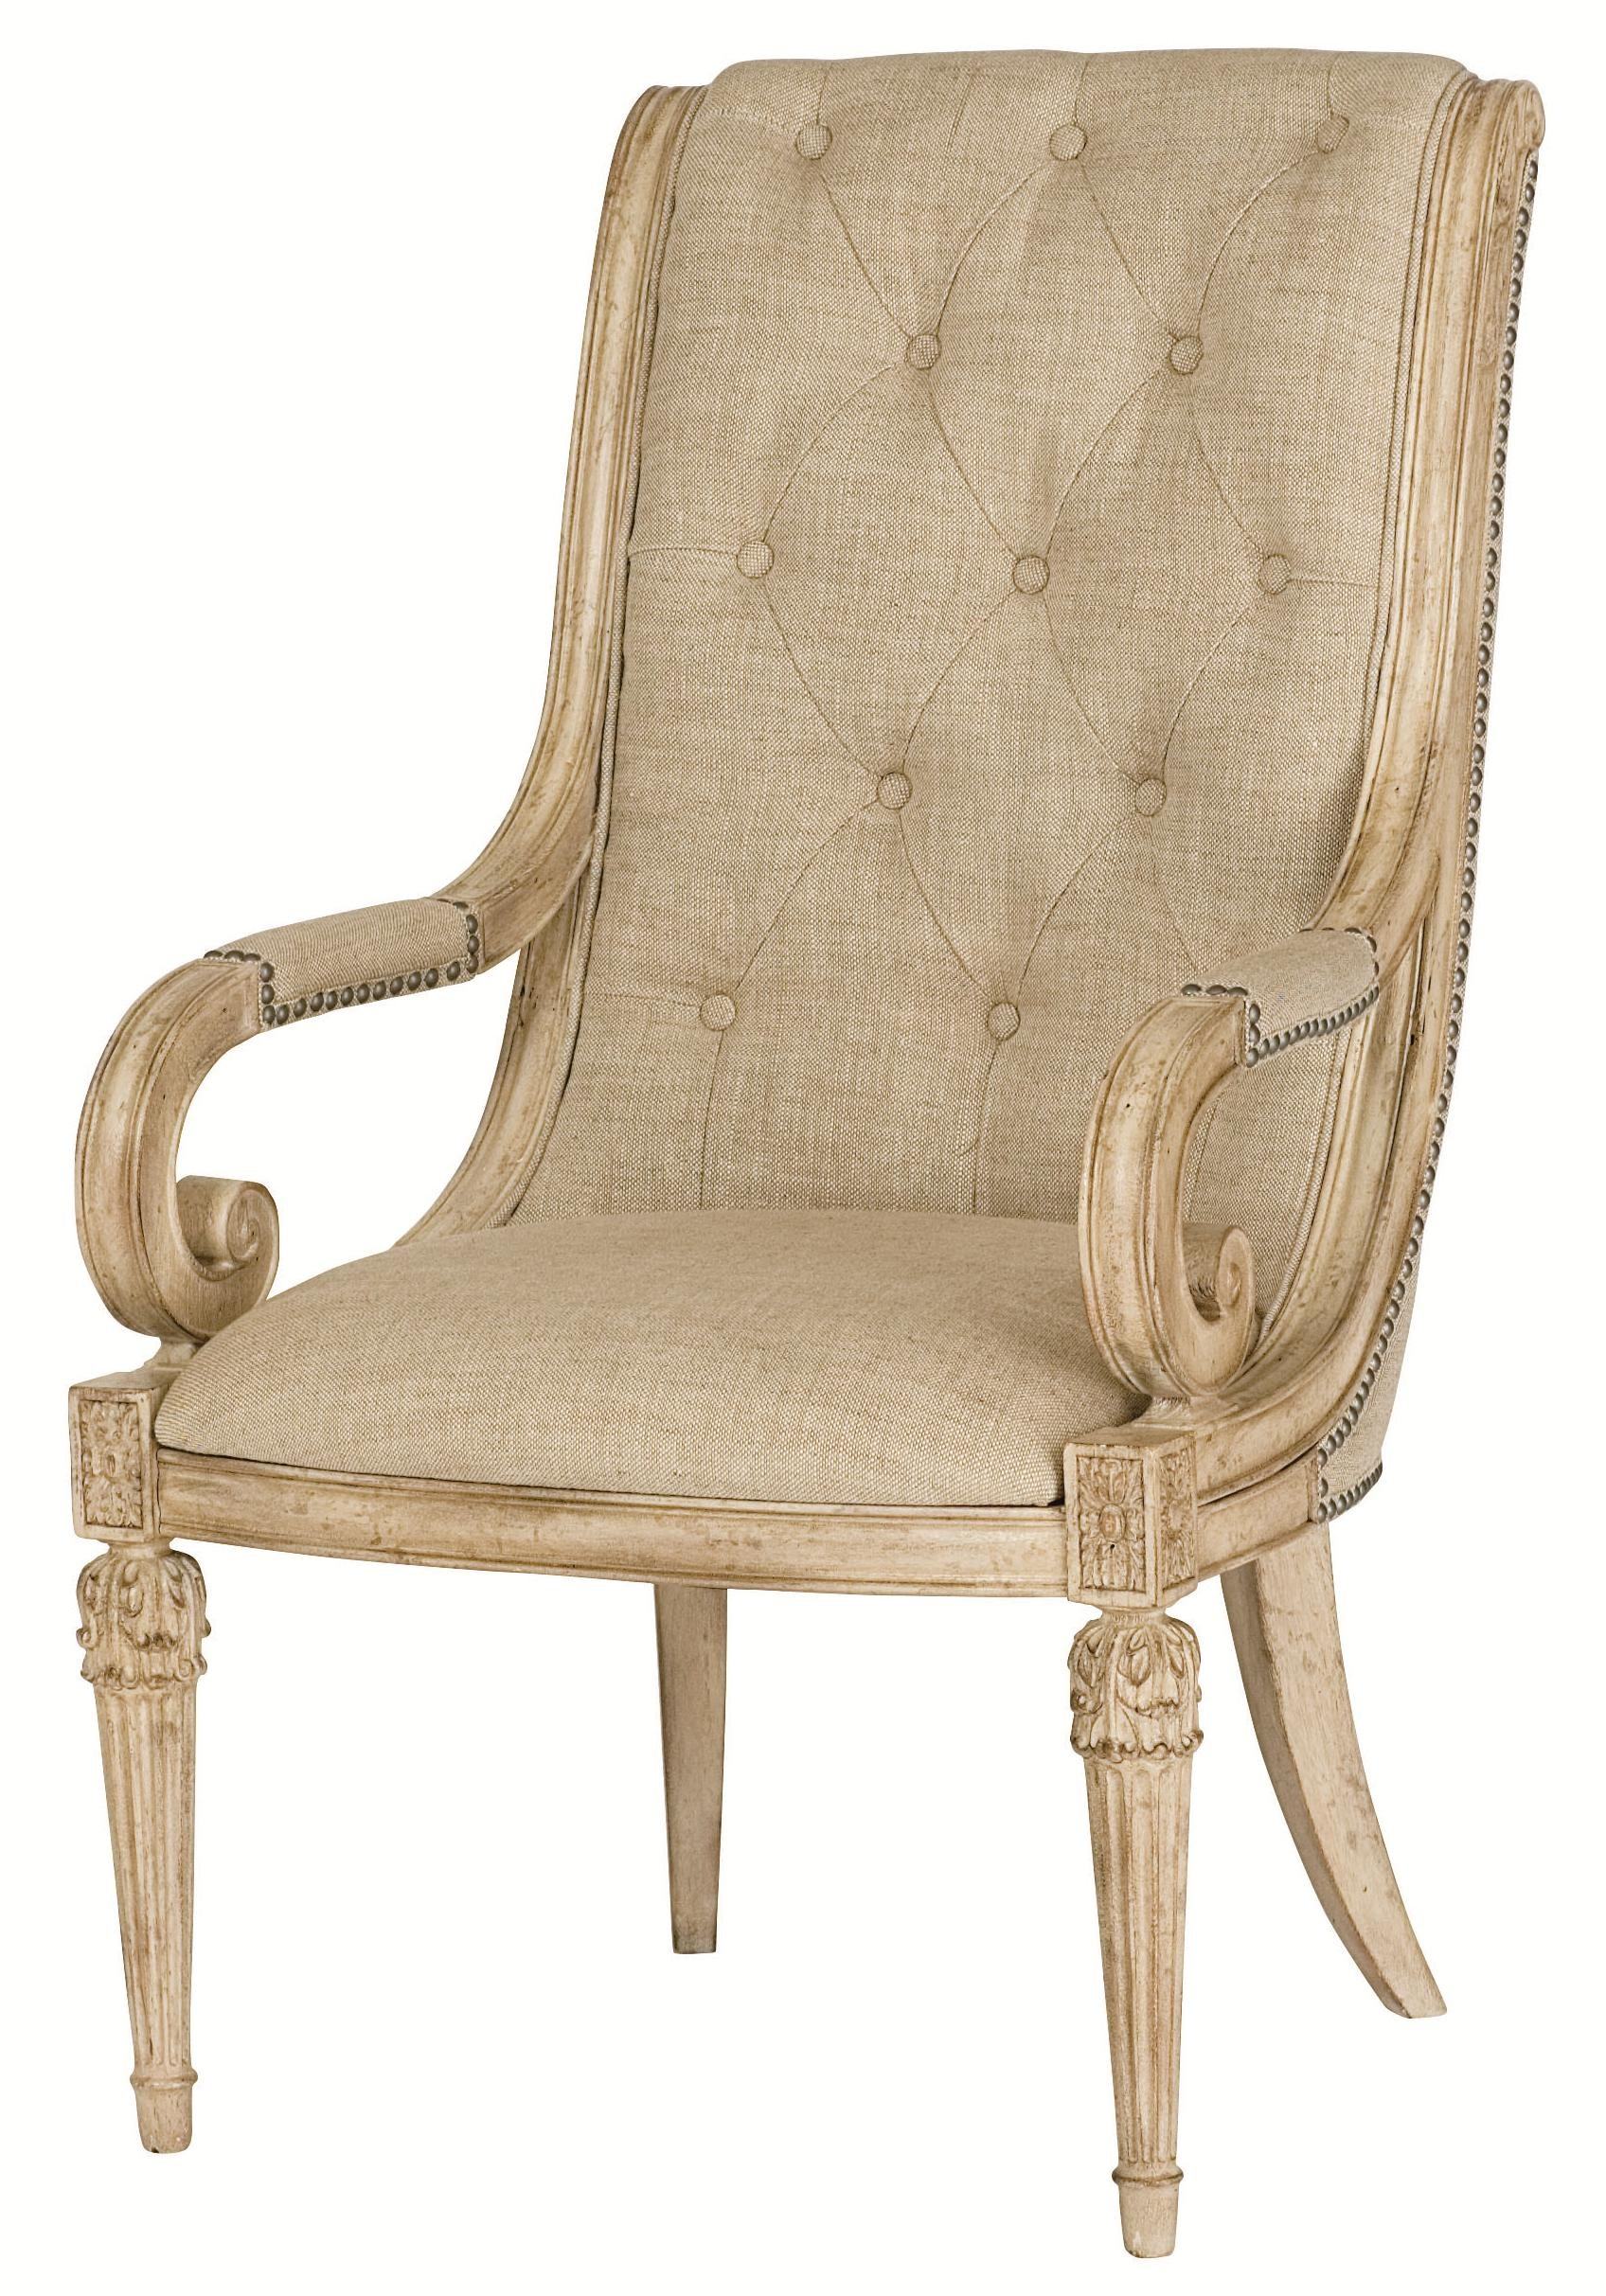 American Drew Jessica McClintock Home   The Boutique Collection Upholstered  Arm Chair With Upholstered Tufted Back